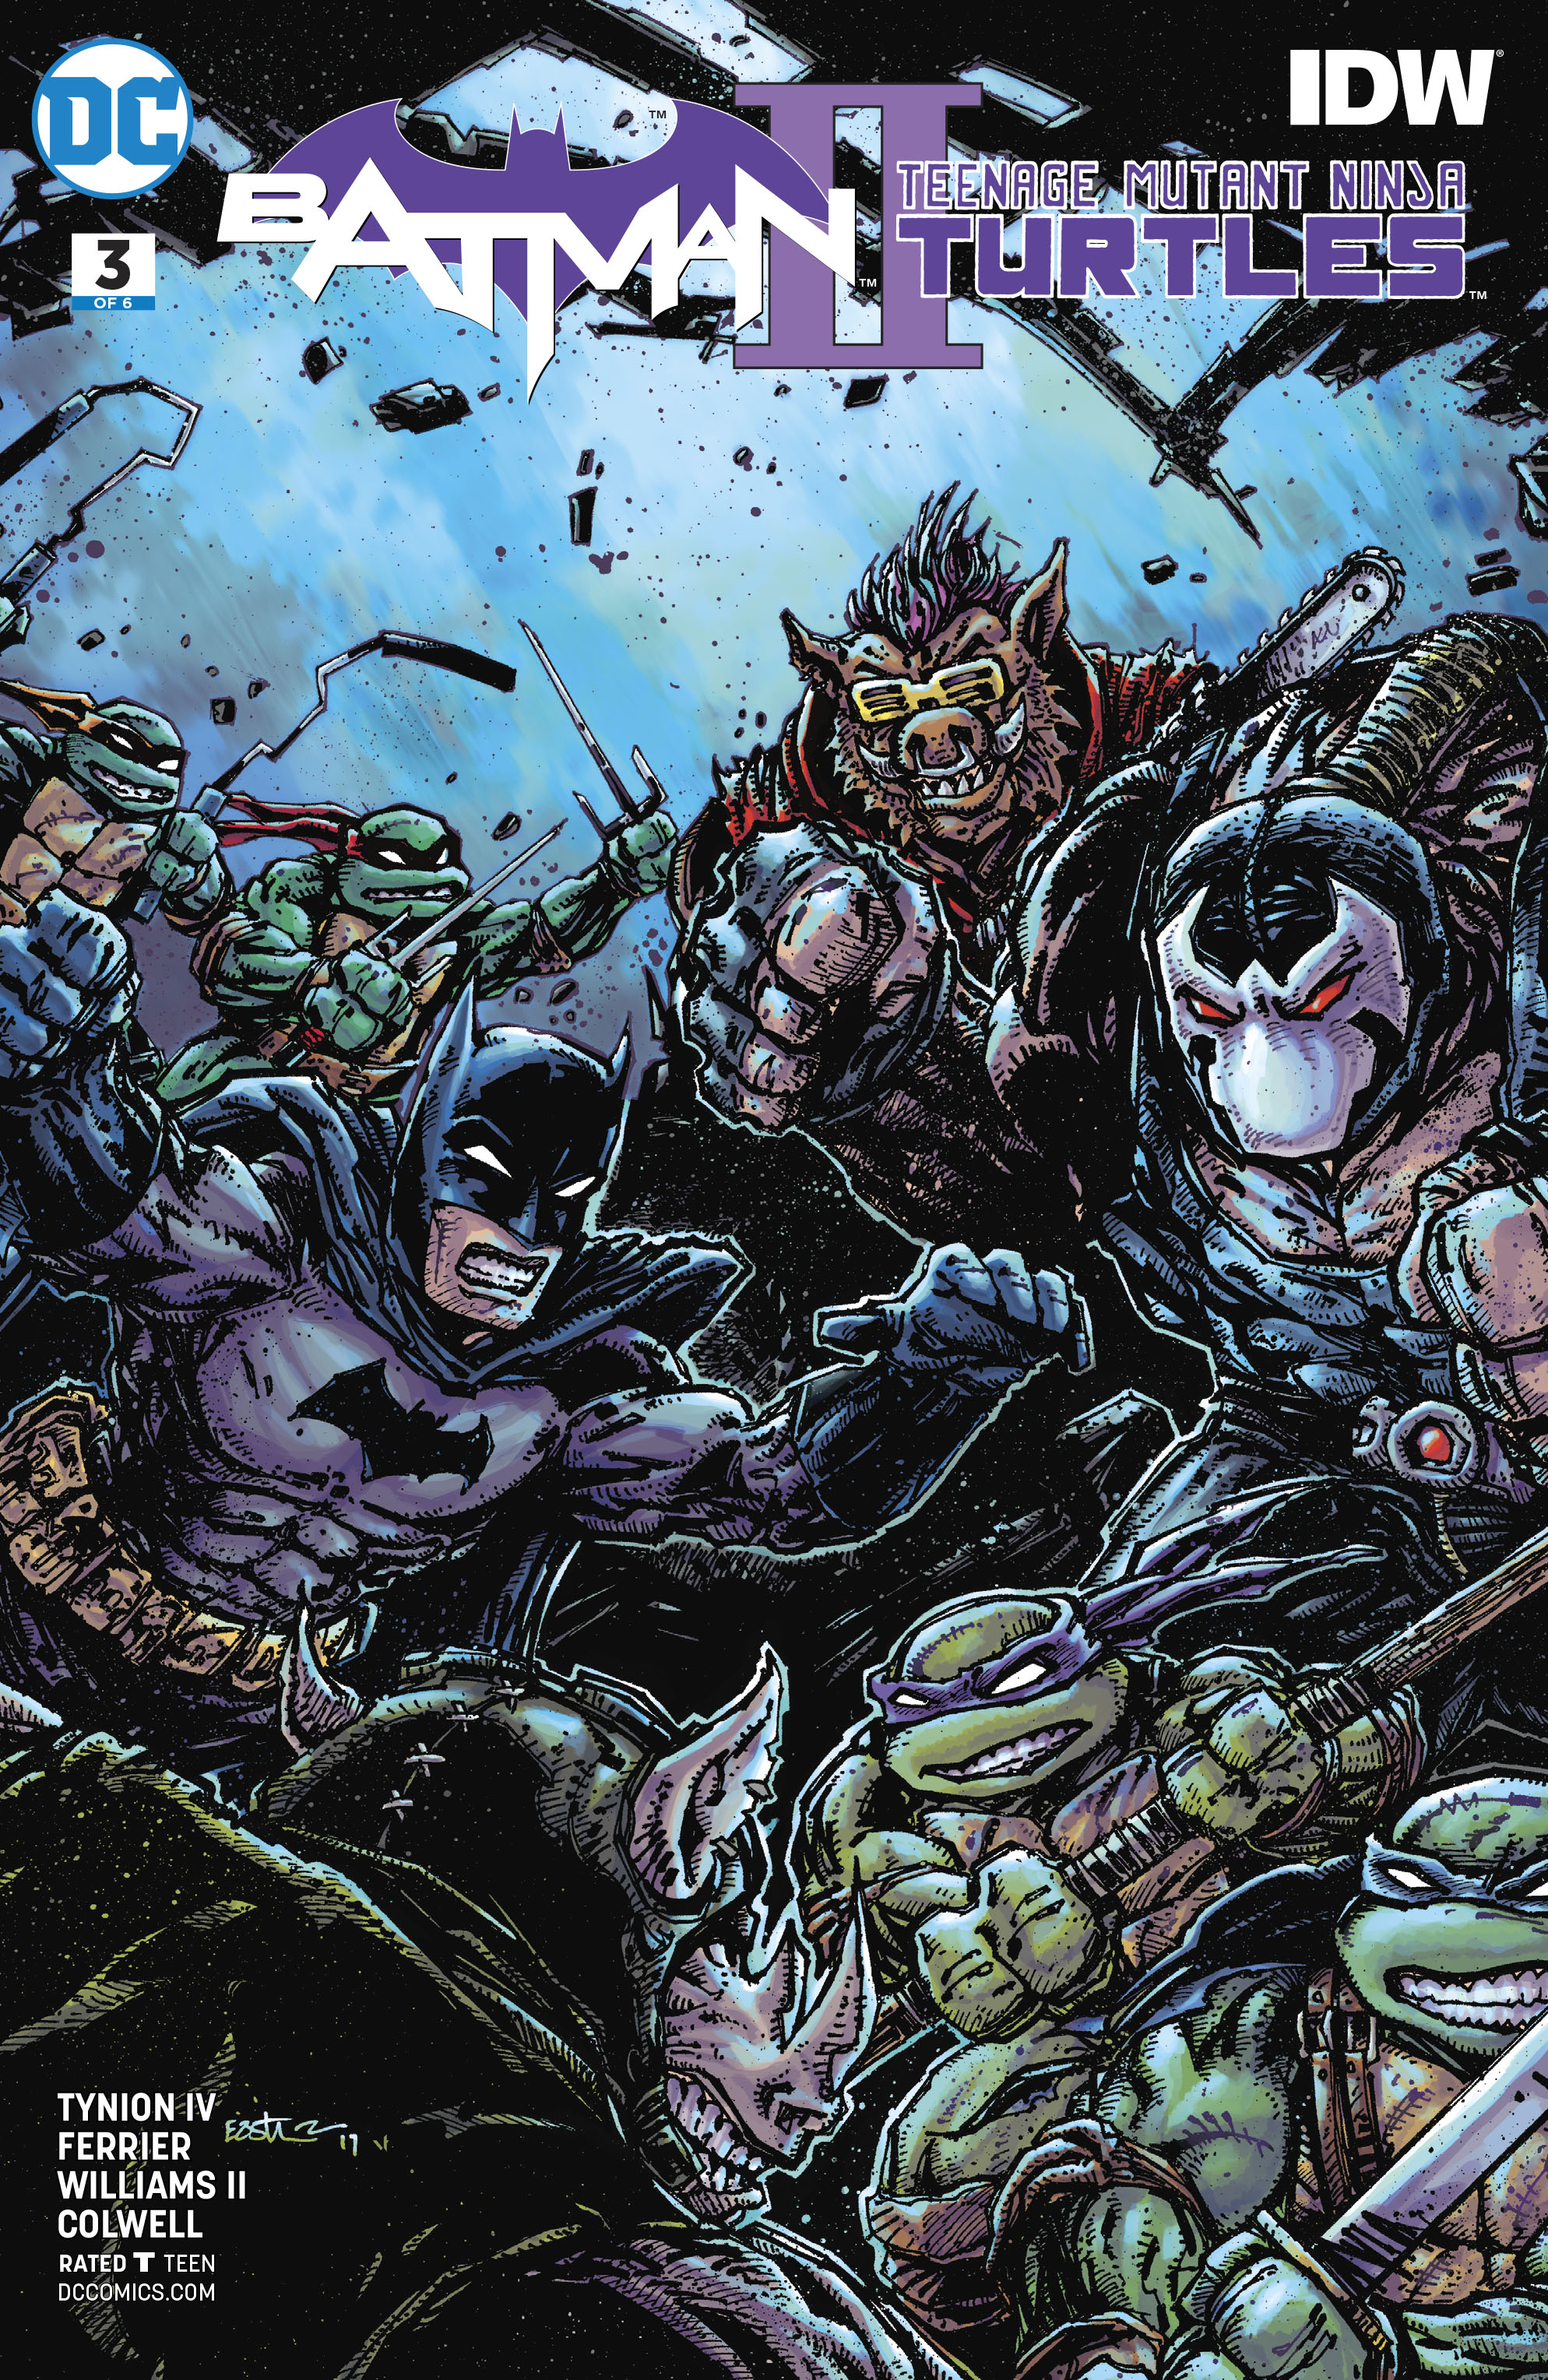 BATMAN TEENAGE MUTANT NINJA TURTLES II #3 (OF 6) VAR ED